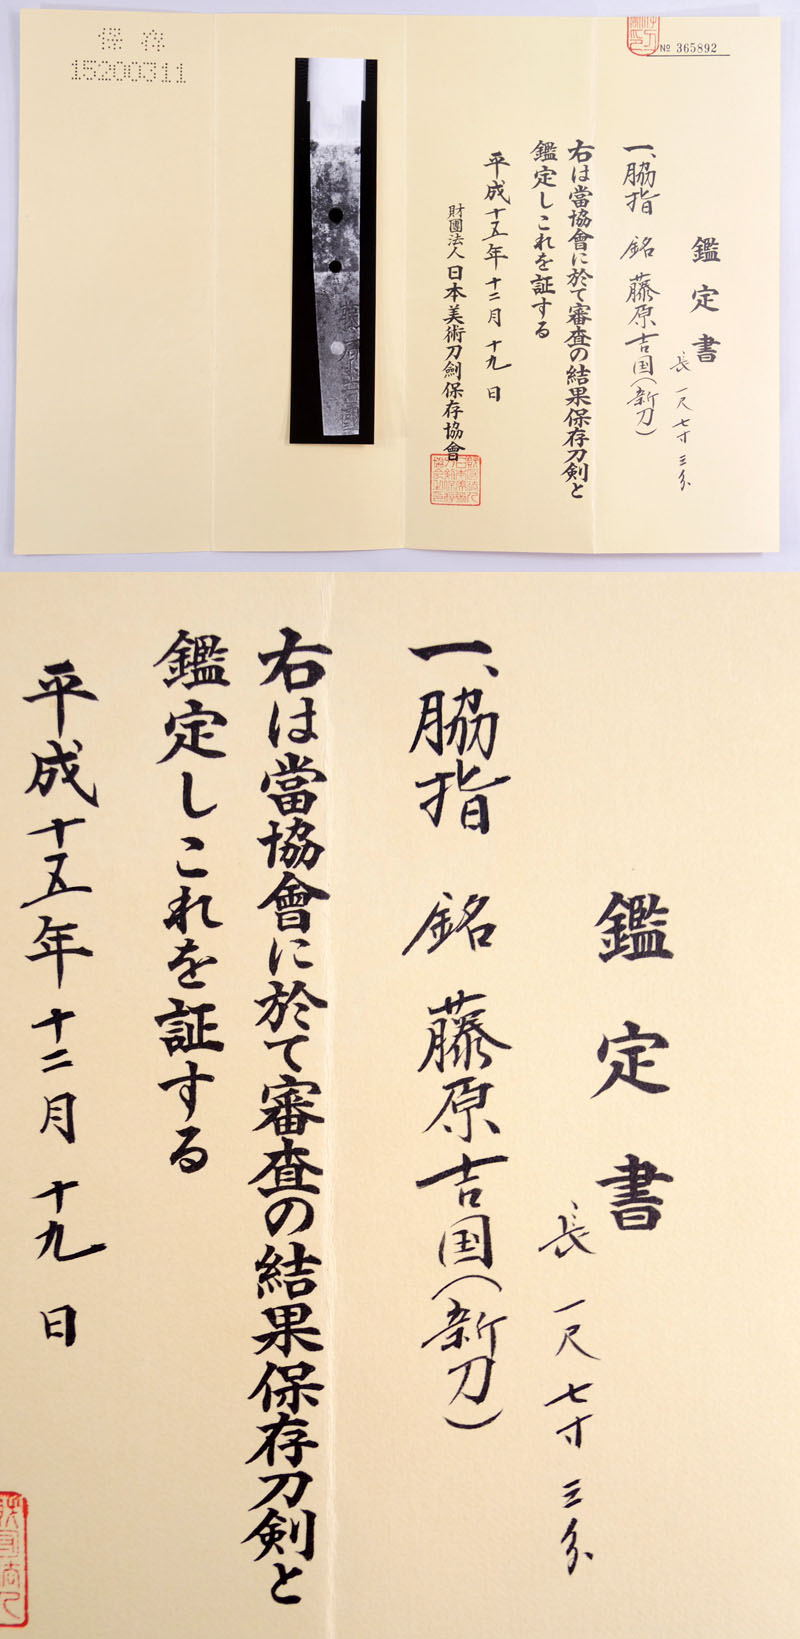 藤原吉国 Picture of Certificate